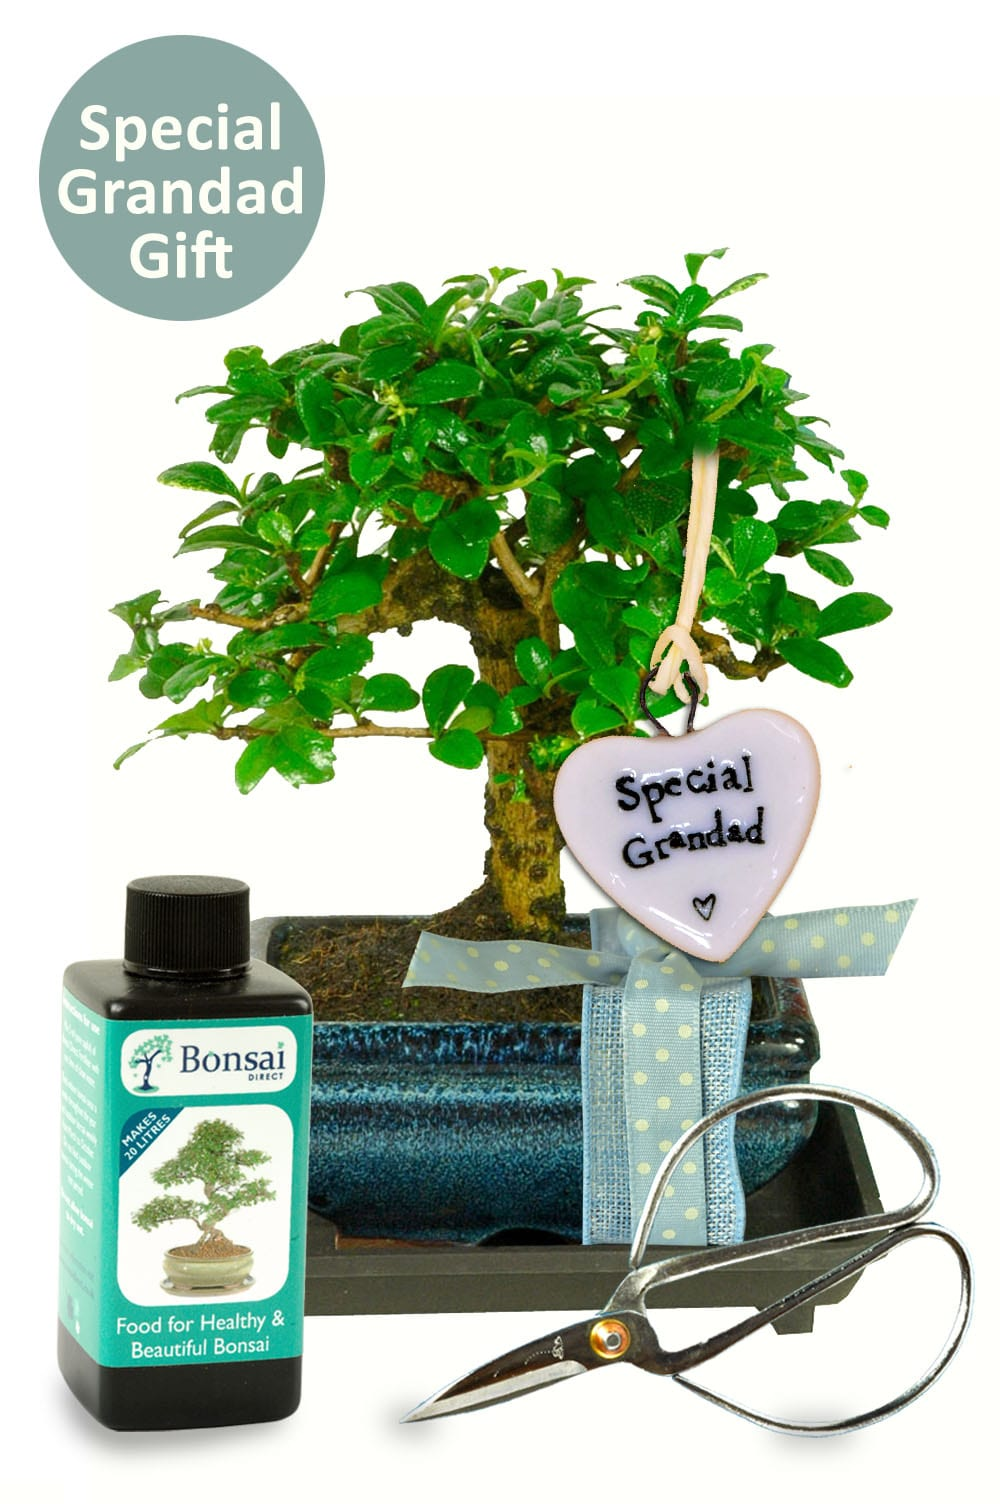 Grandads birthday bonsai starter kit